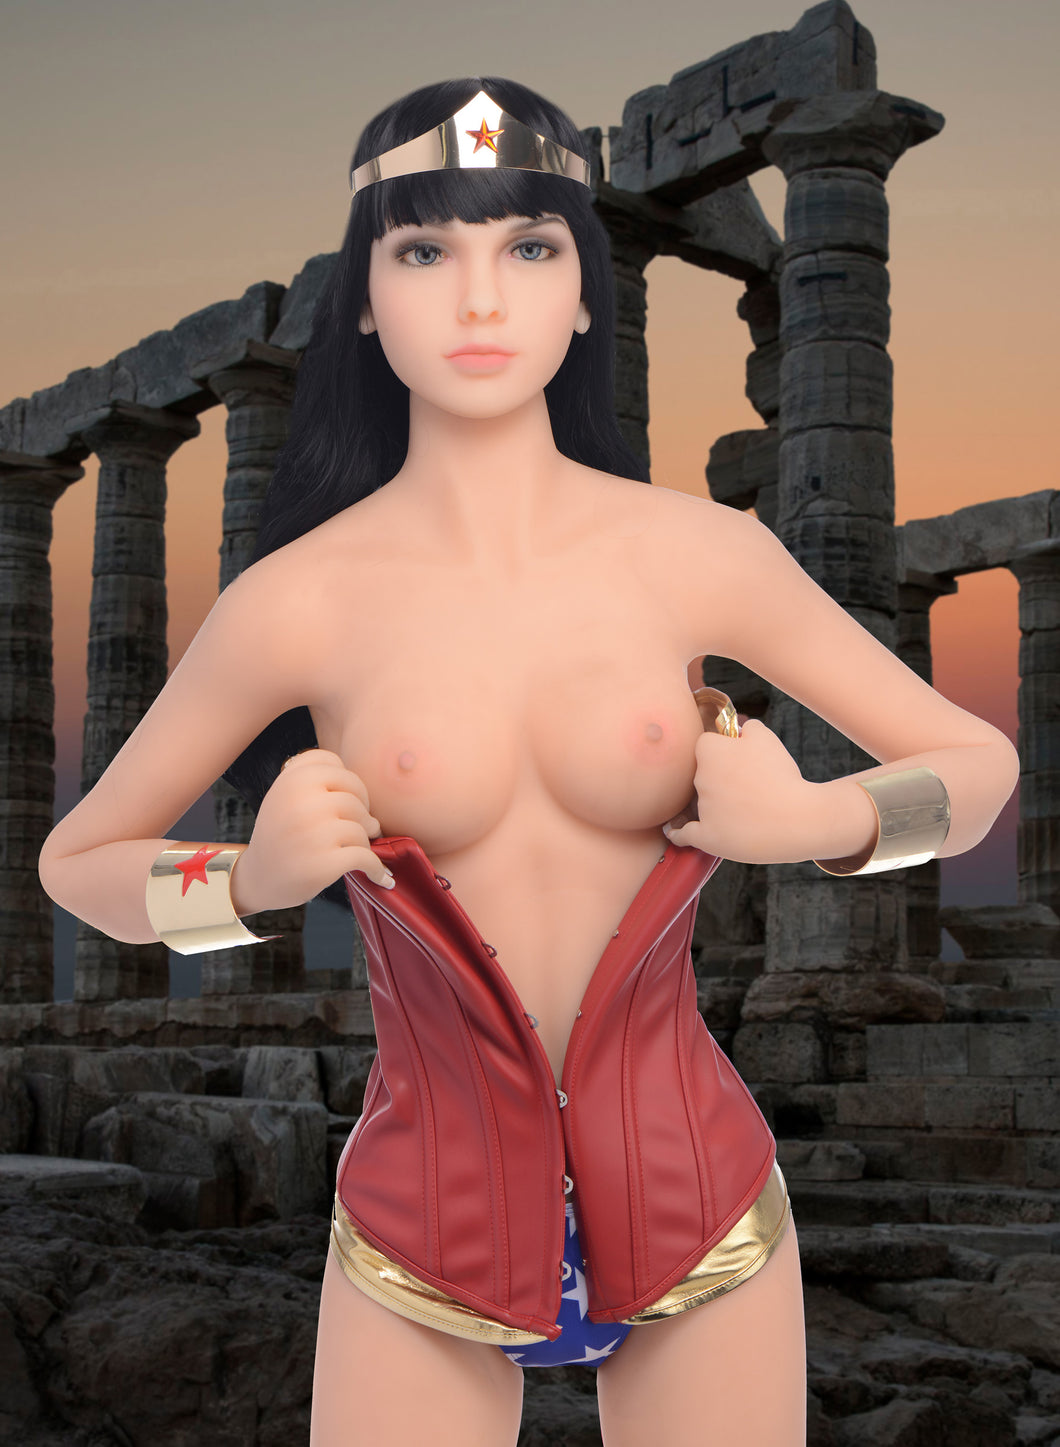 NextGen Dolls Super Hero Woman Fantasy Love Doll AG244,3D Masturbators